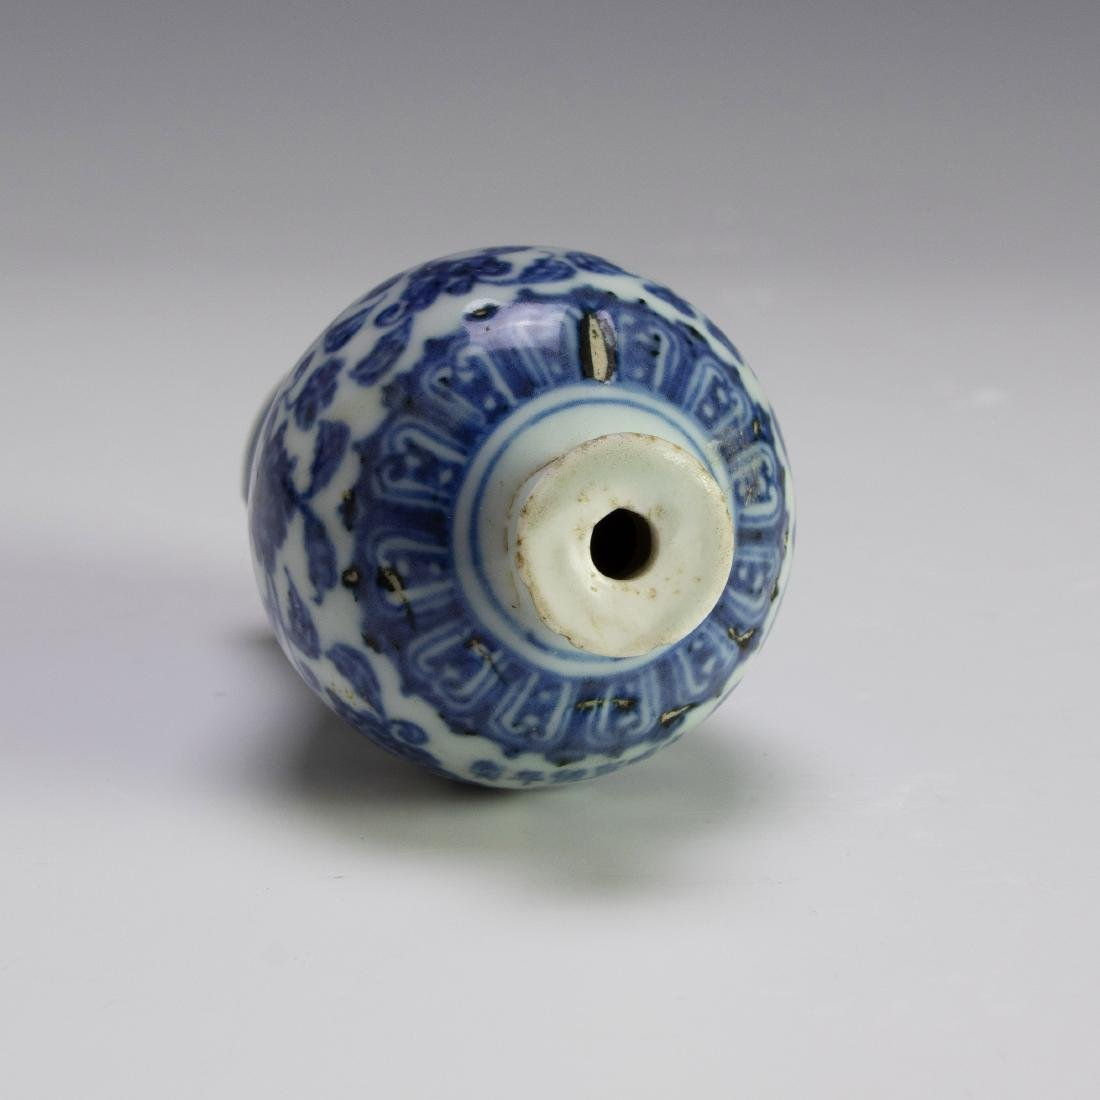 Chinese Blue & White Porcelain Snuff Bottle, 18th C. - 5